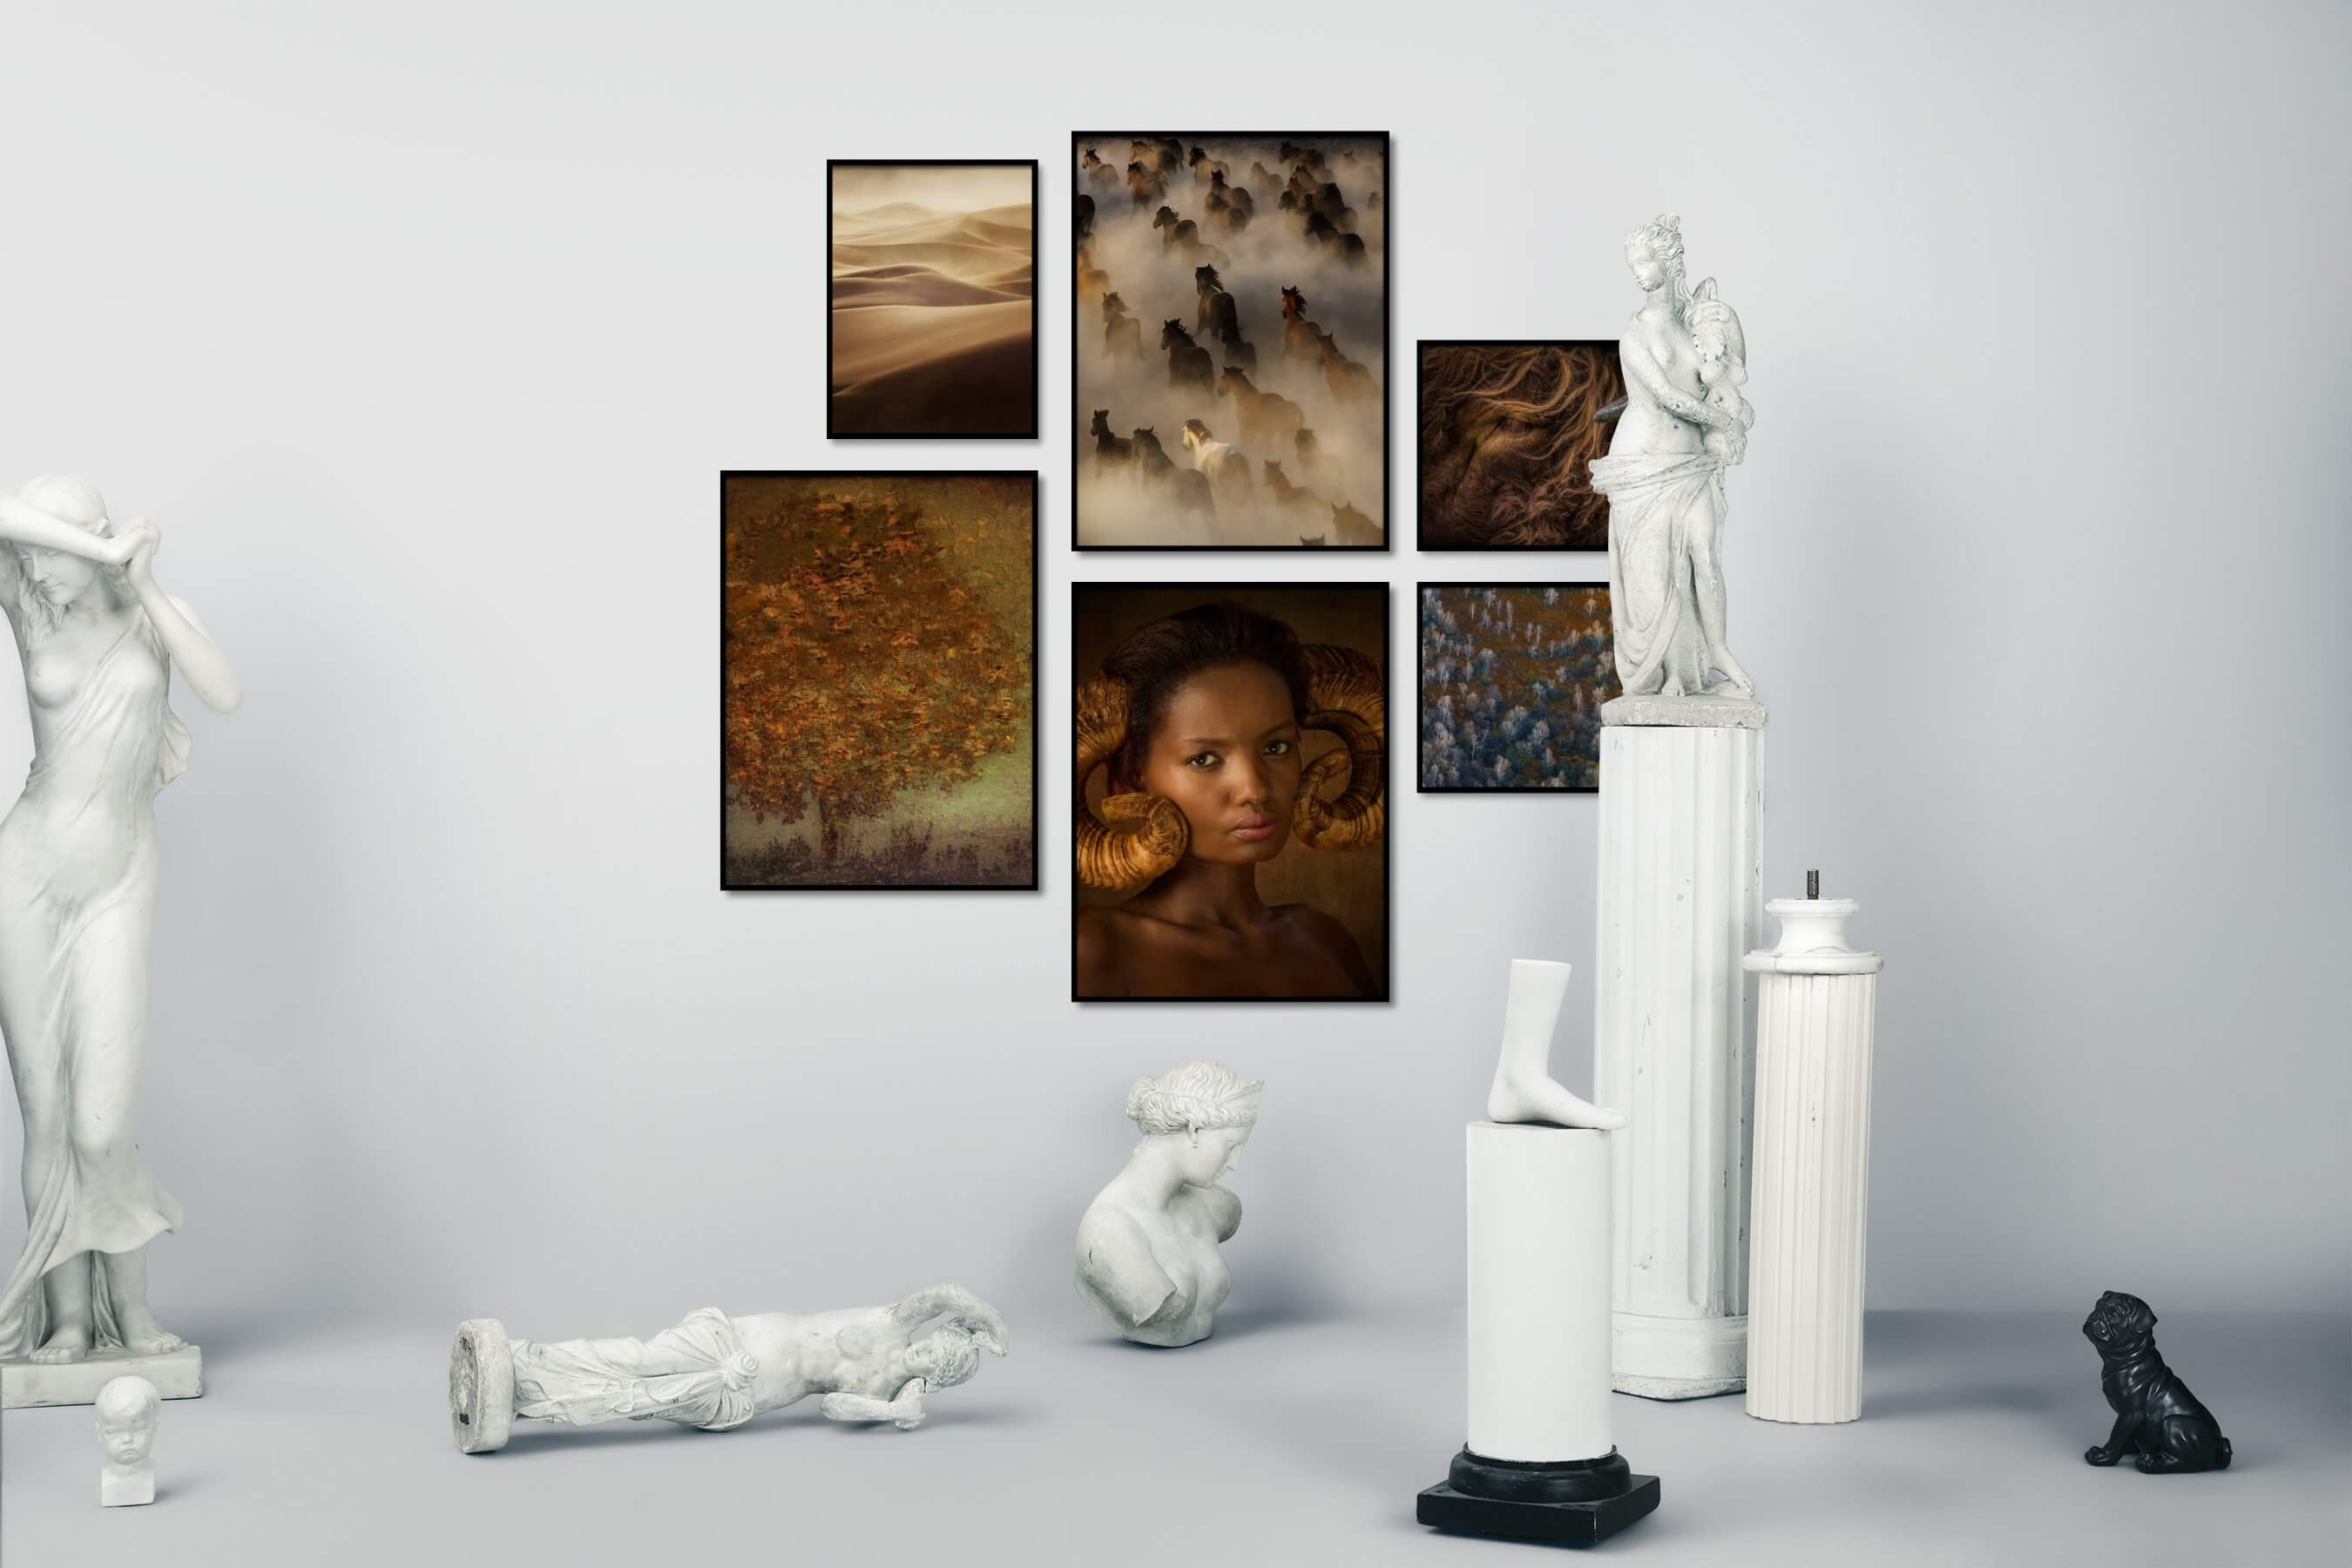 Gallery wall idea with six framed pictures arranged on a wall depicting For the Moderate, Nature, Mindfulness, Animals, Country Life, and Artsy